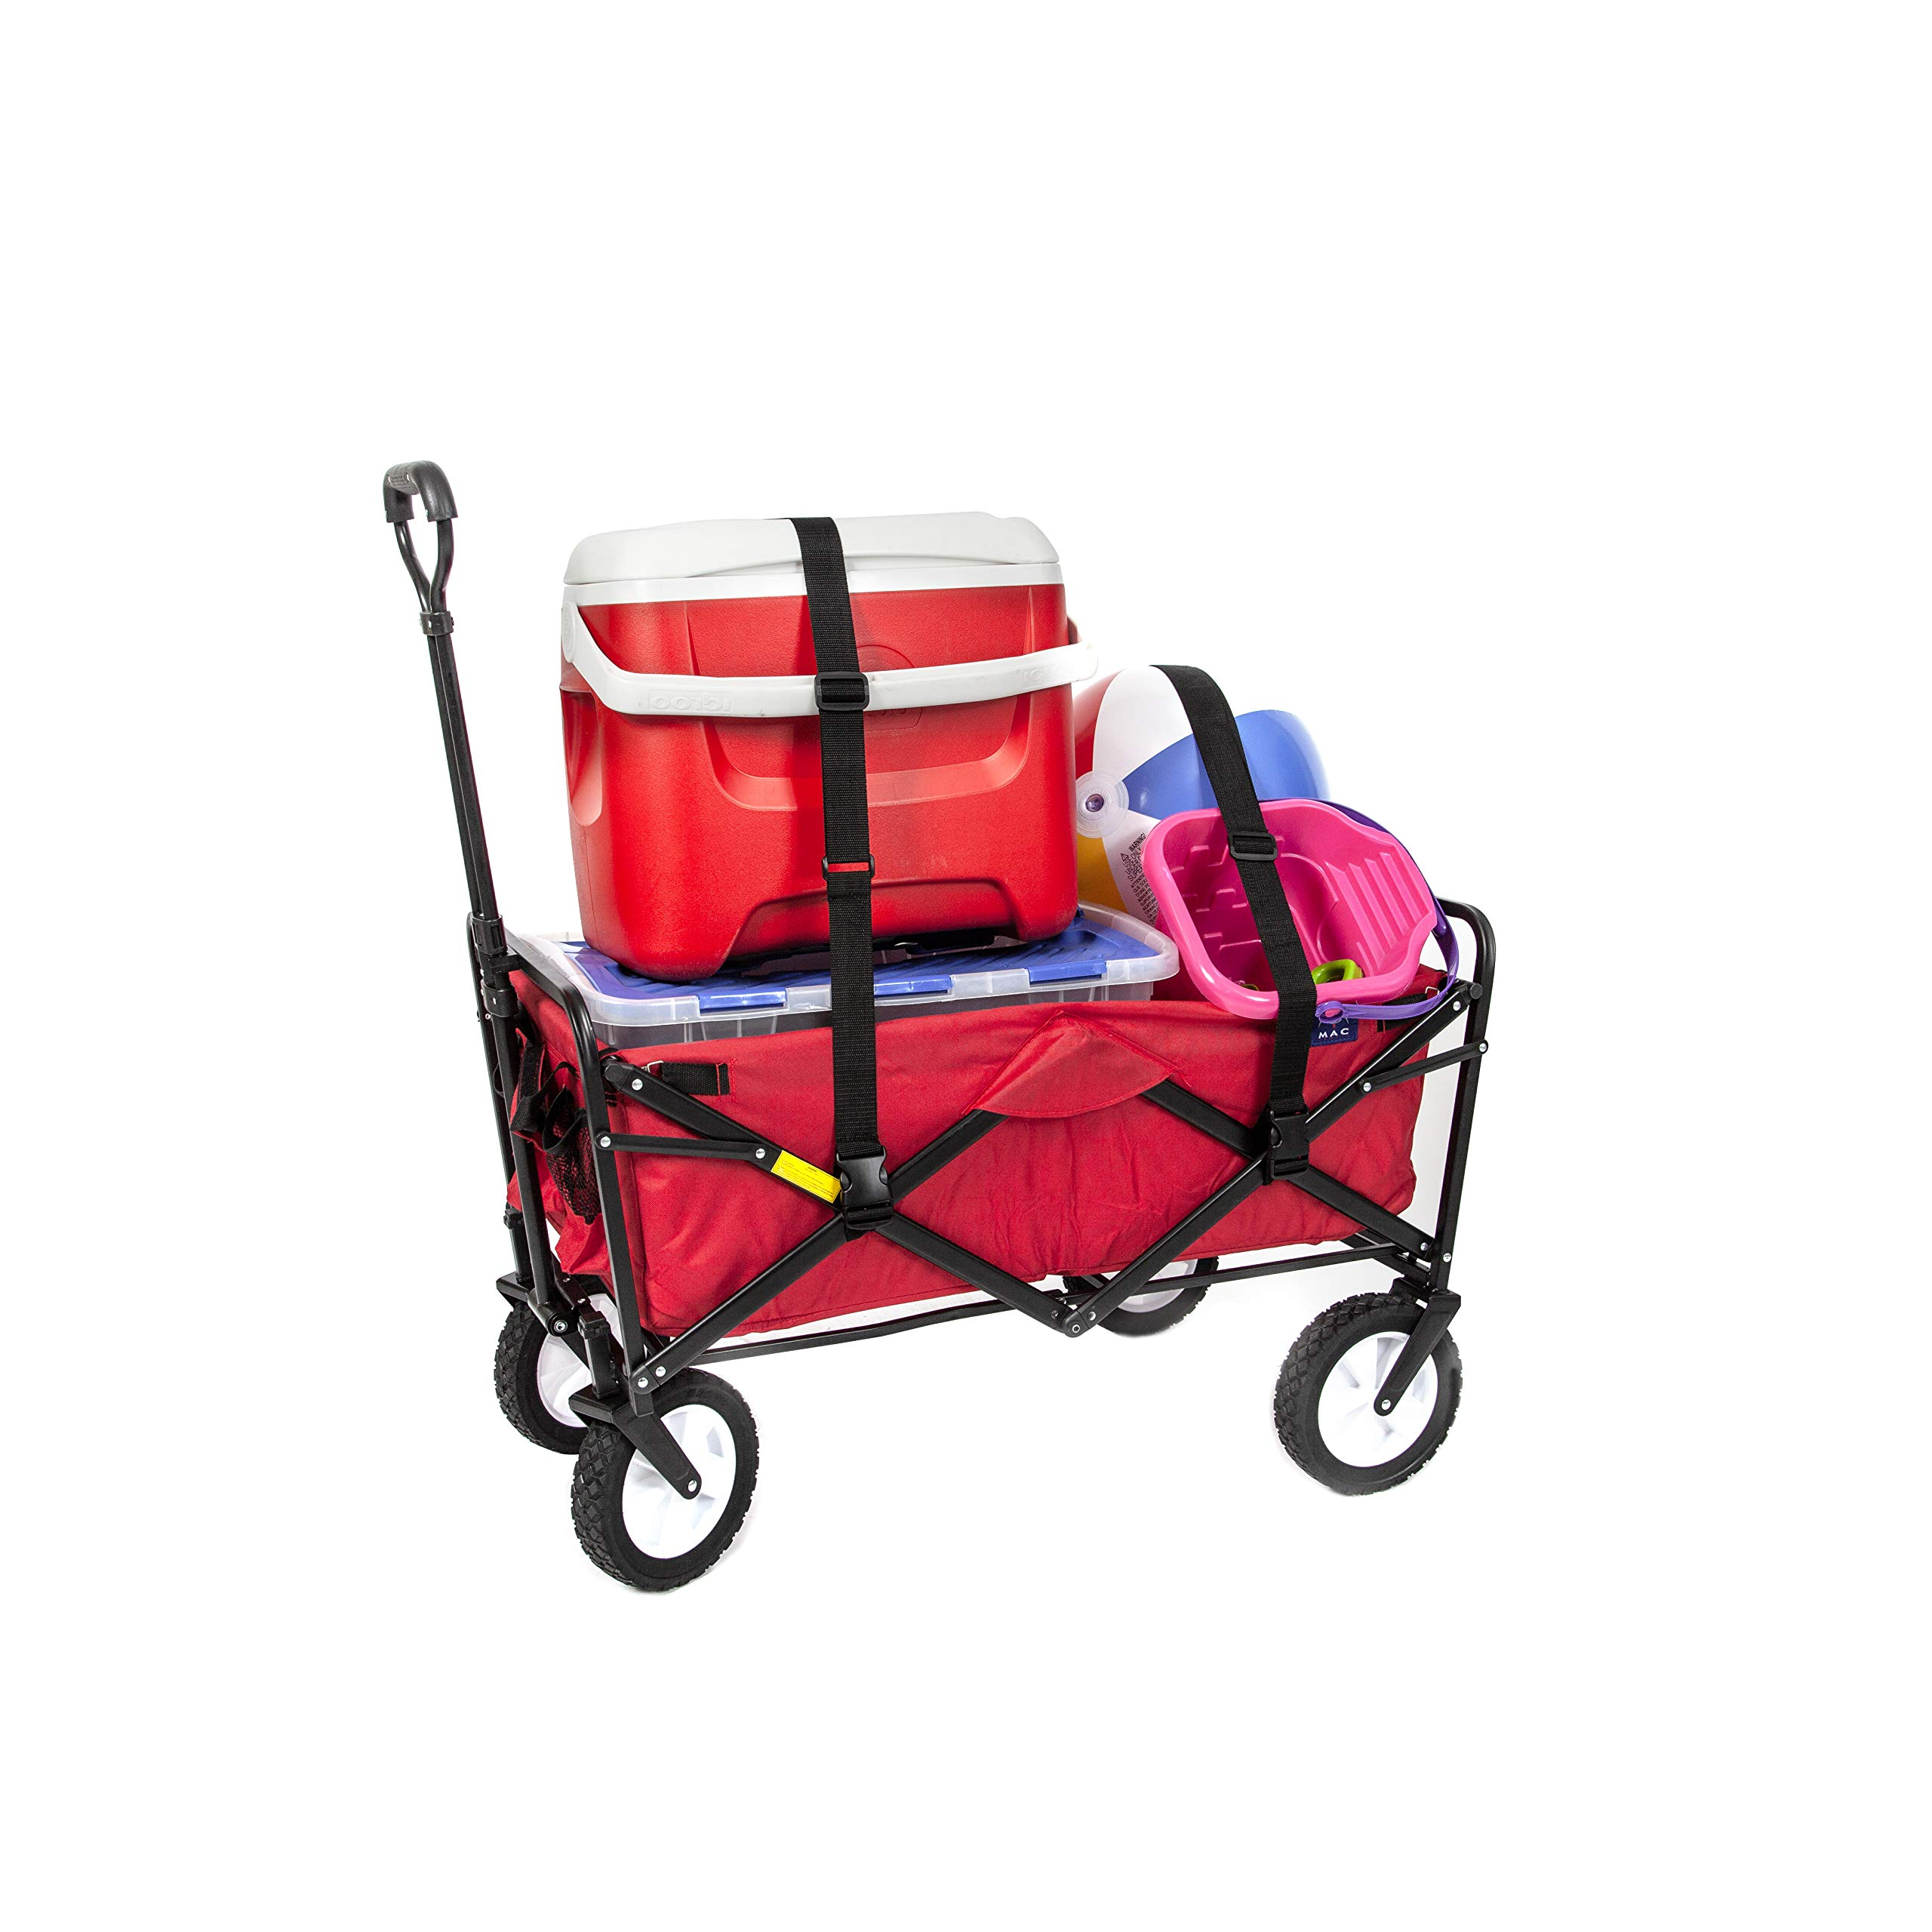 Best Rated in Garden Carts & Helpful Customer Reviews